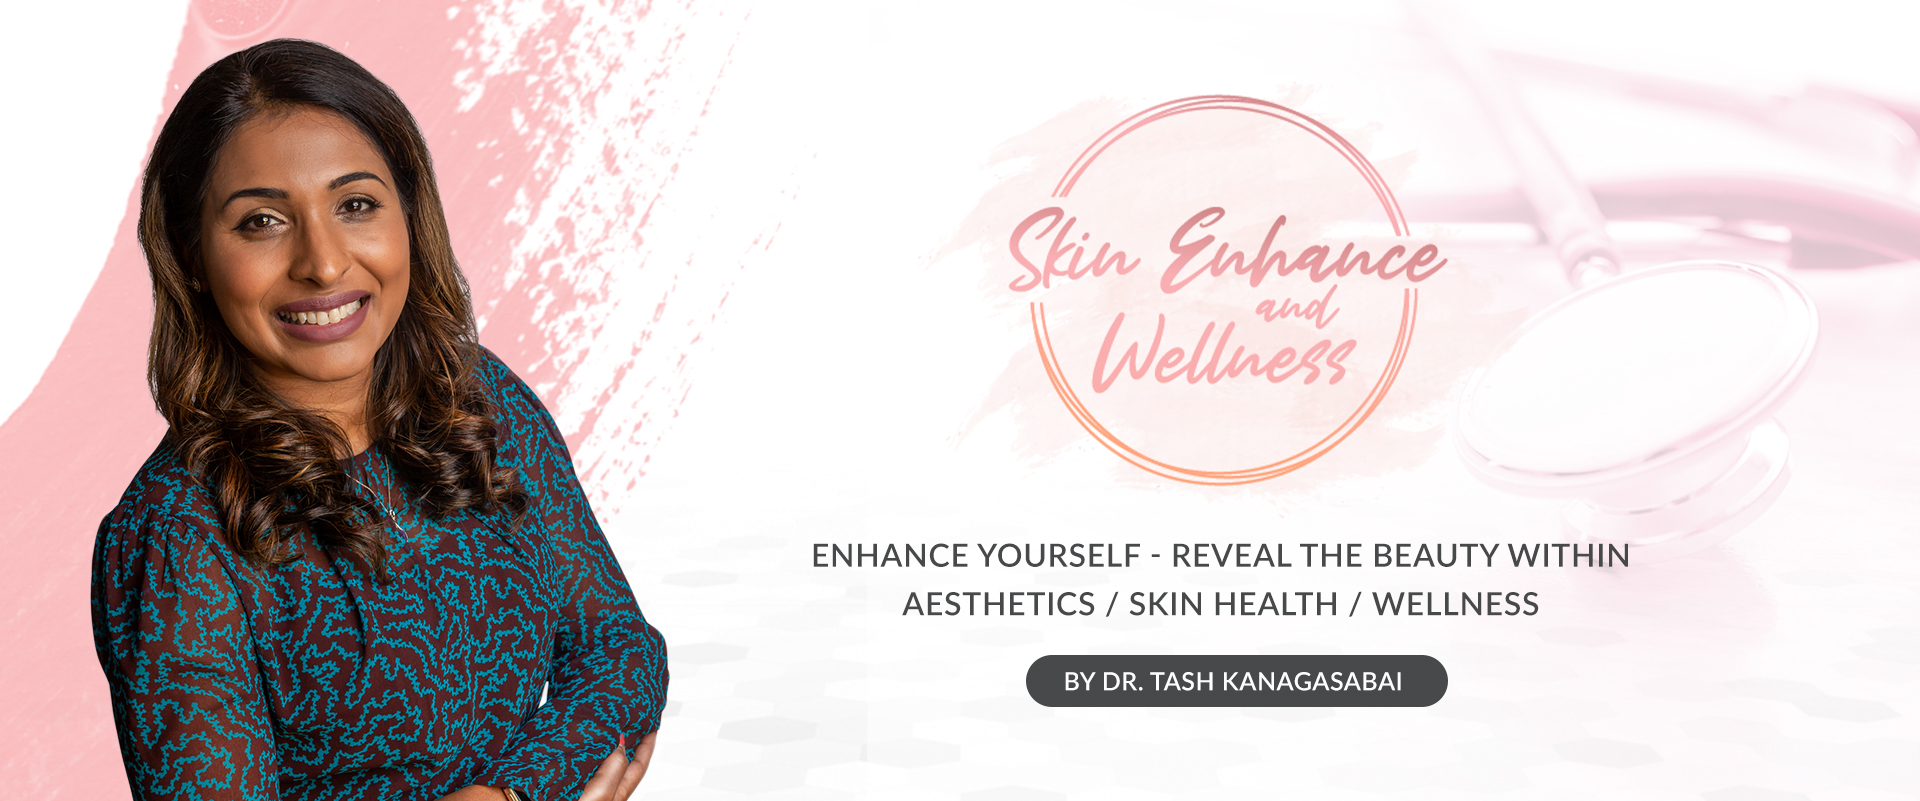 SKin Enhance is a Skin Clinic based in Billericay, Essex.